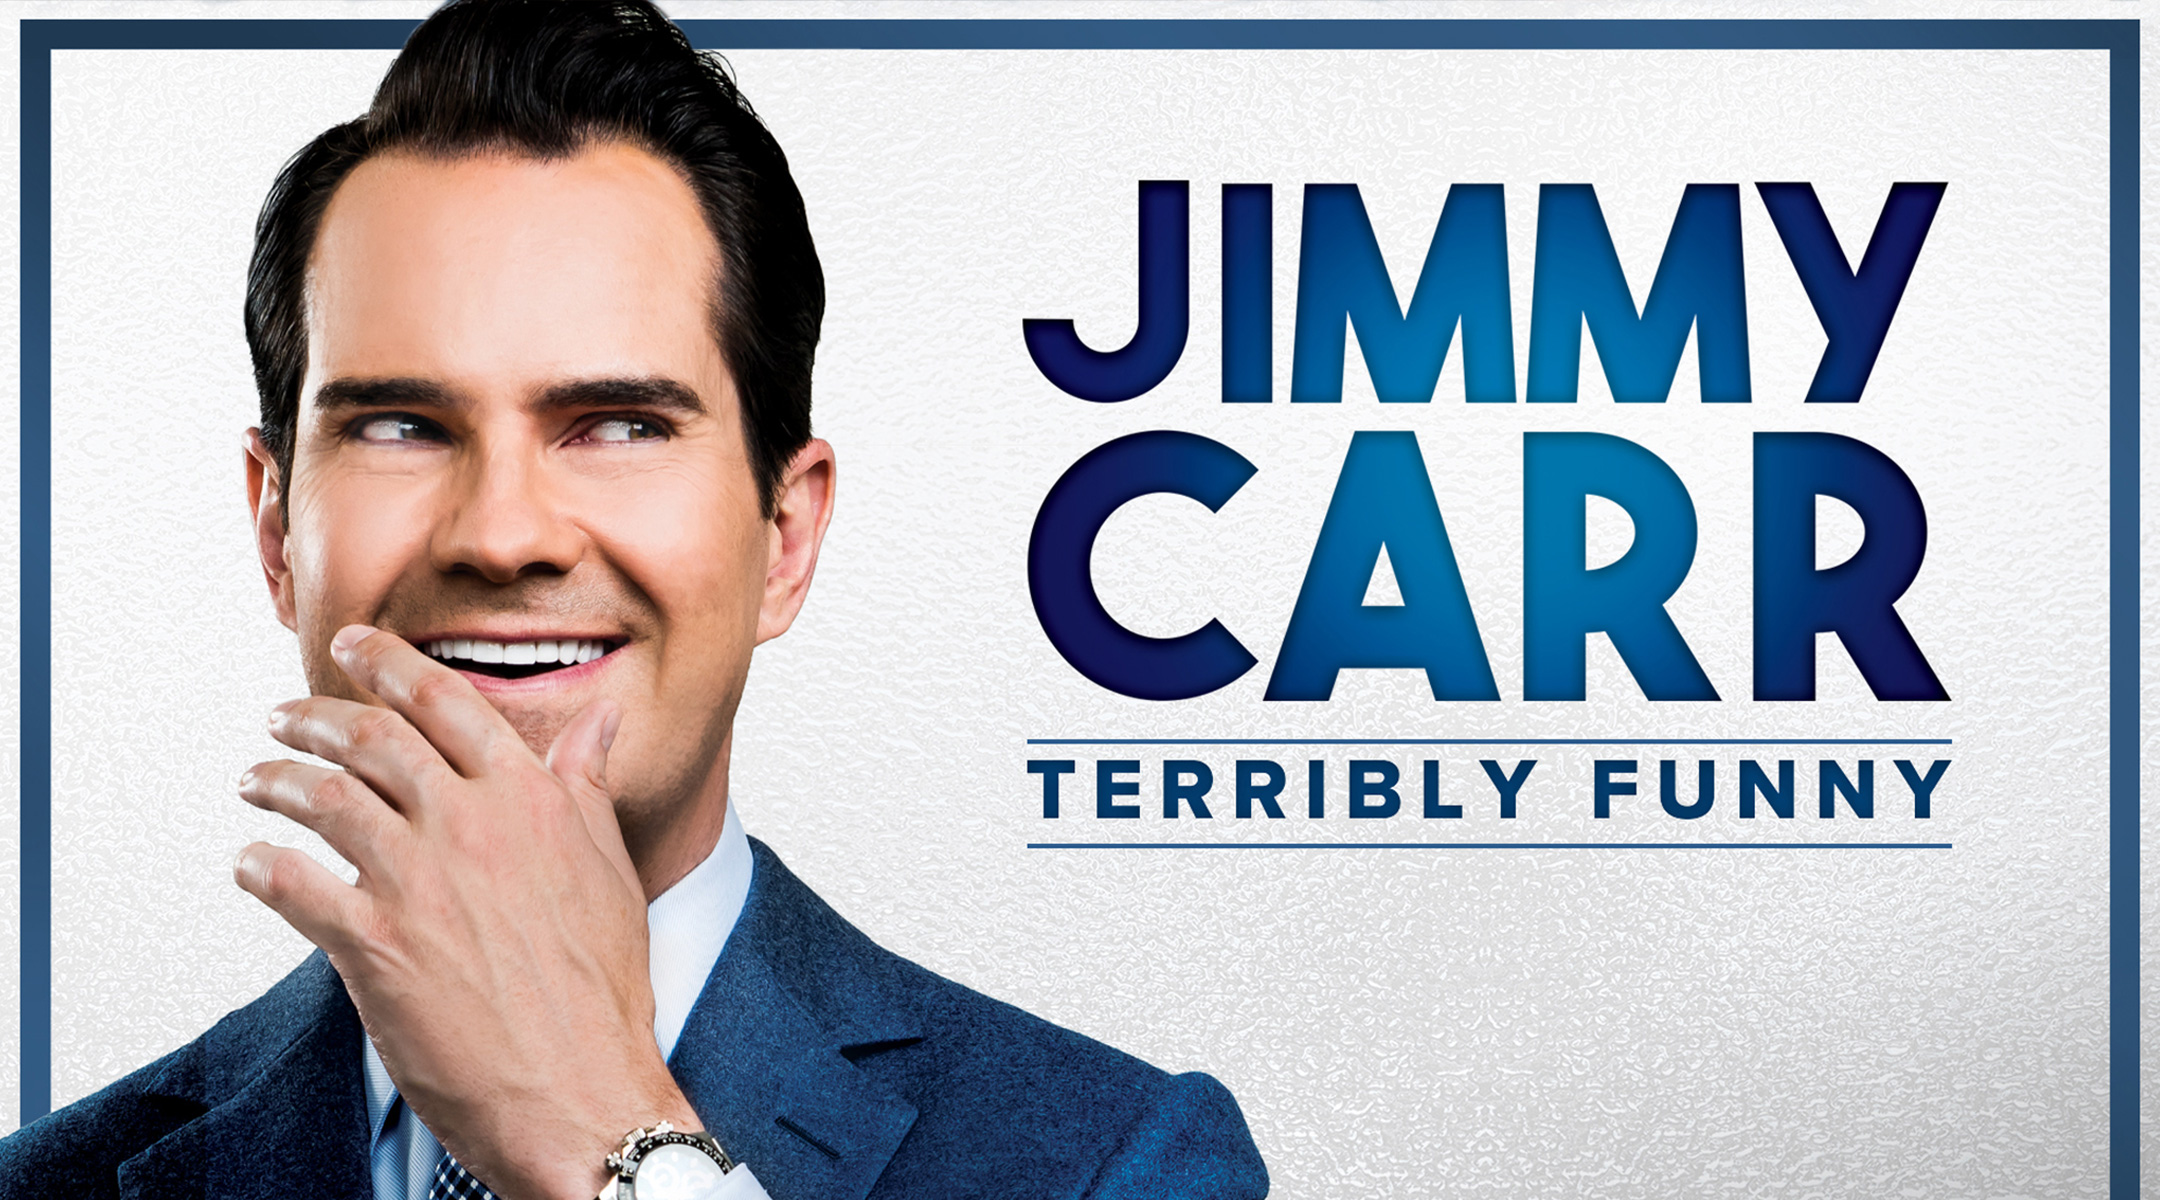 Jimmy Carr: Terribly Funny - Aberdeen - 15th Early Show